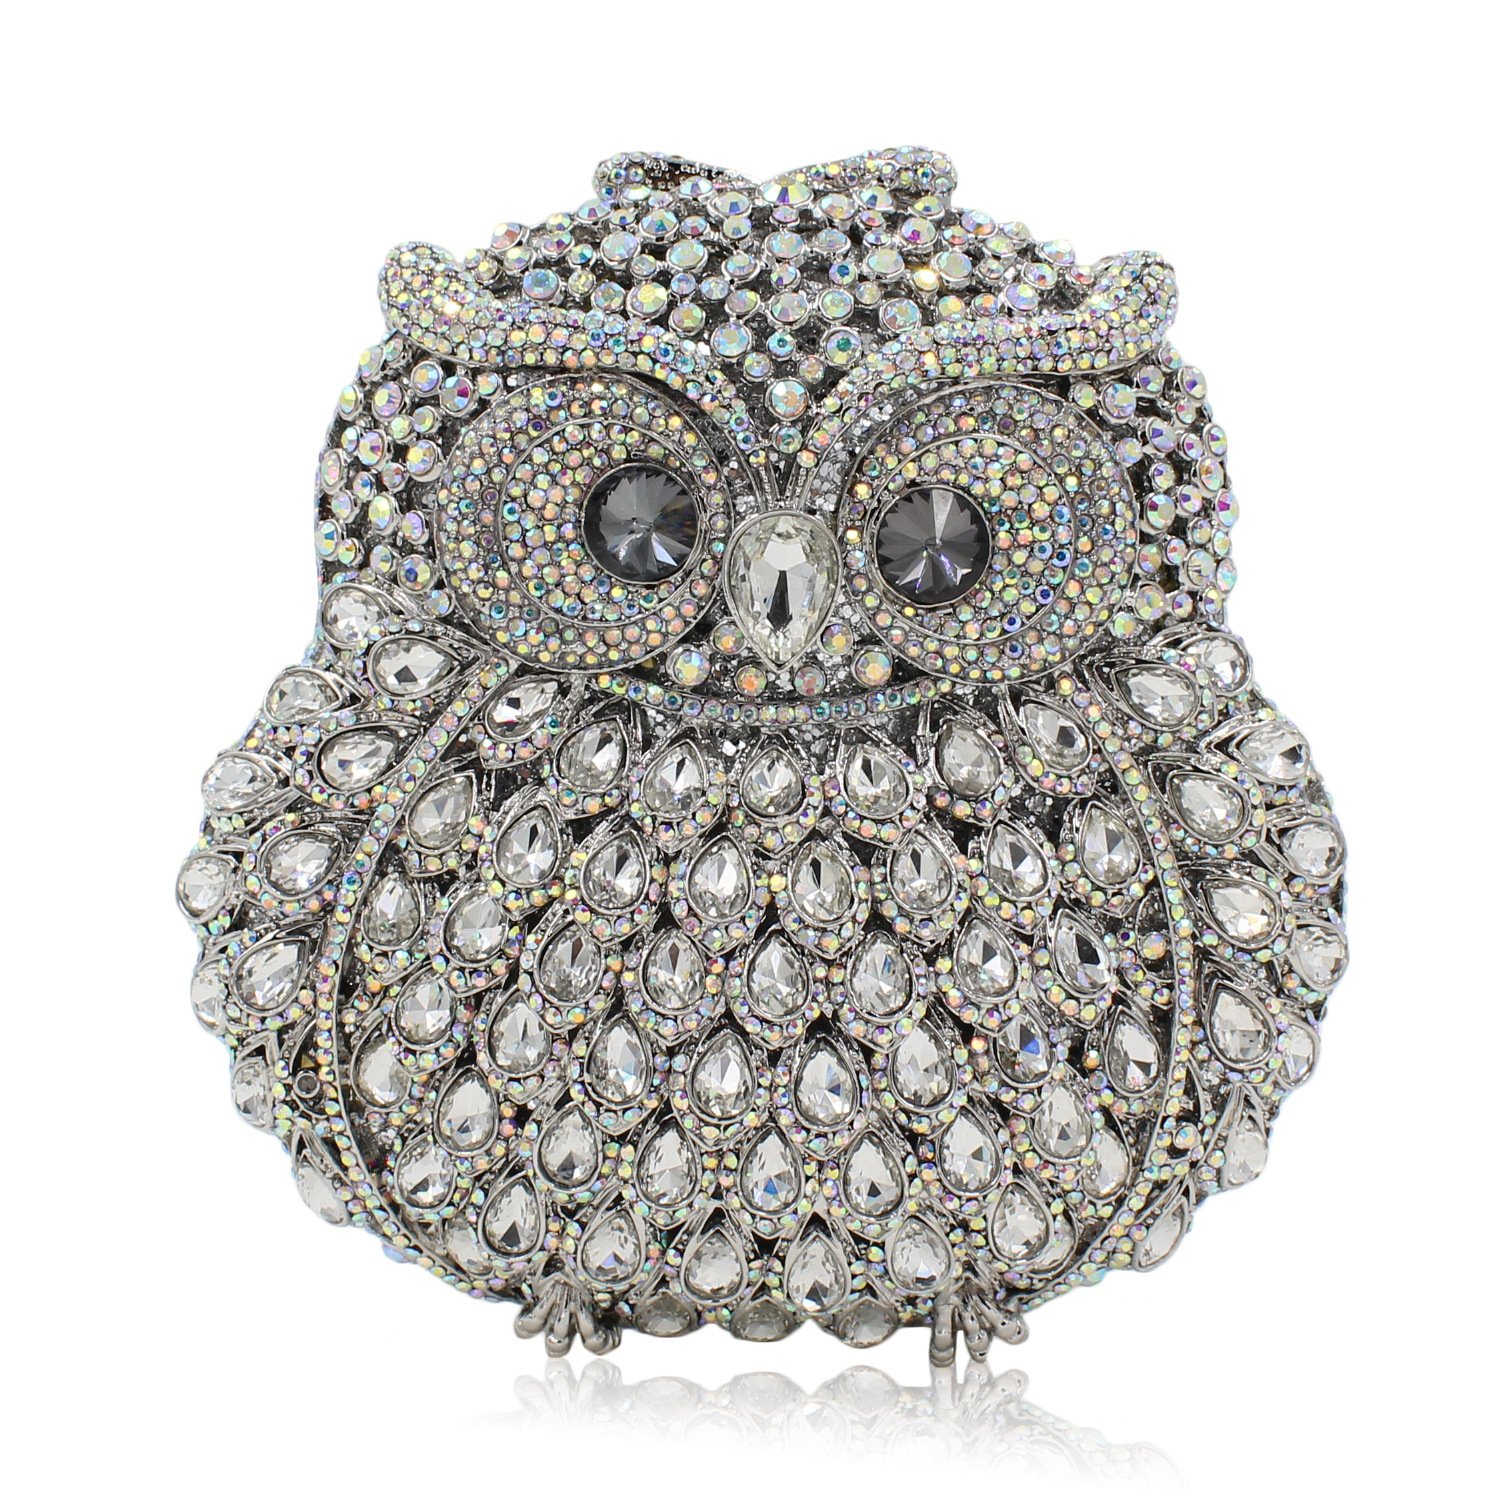 Rhinestone Owl Purse Clutch Handbag Prom Wedding Party Evening Bag for Women Crossbody Shoulder Bag (Silver)